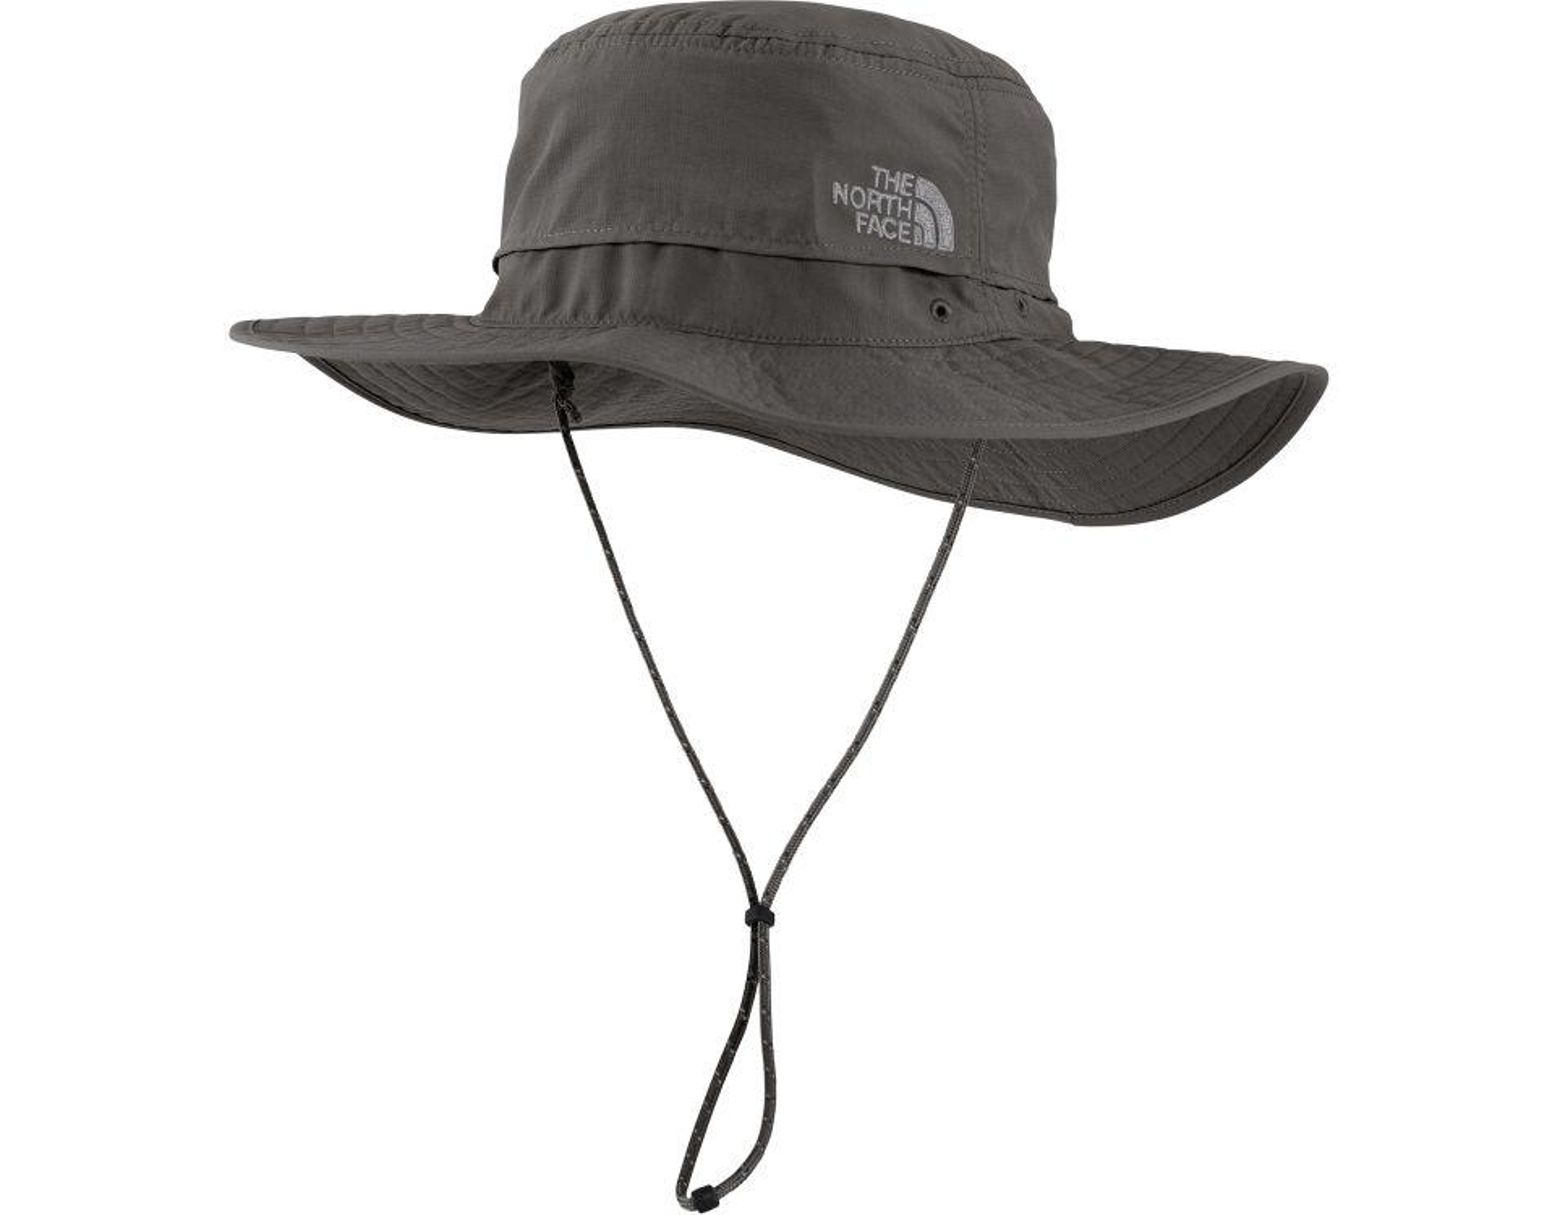 71f6a86c069e0a The North Face Horizon Breeze Brimmer Hat in Gray for Men - Lyst